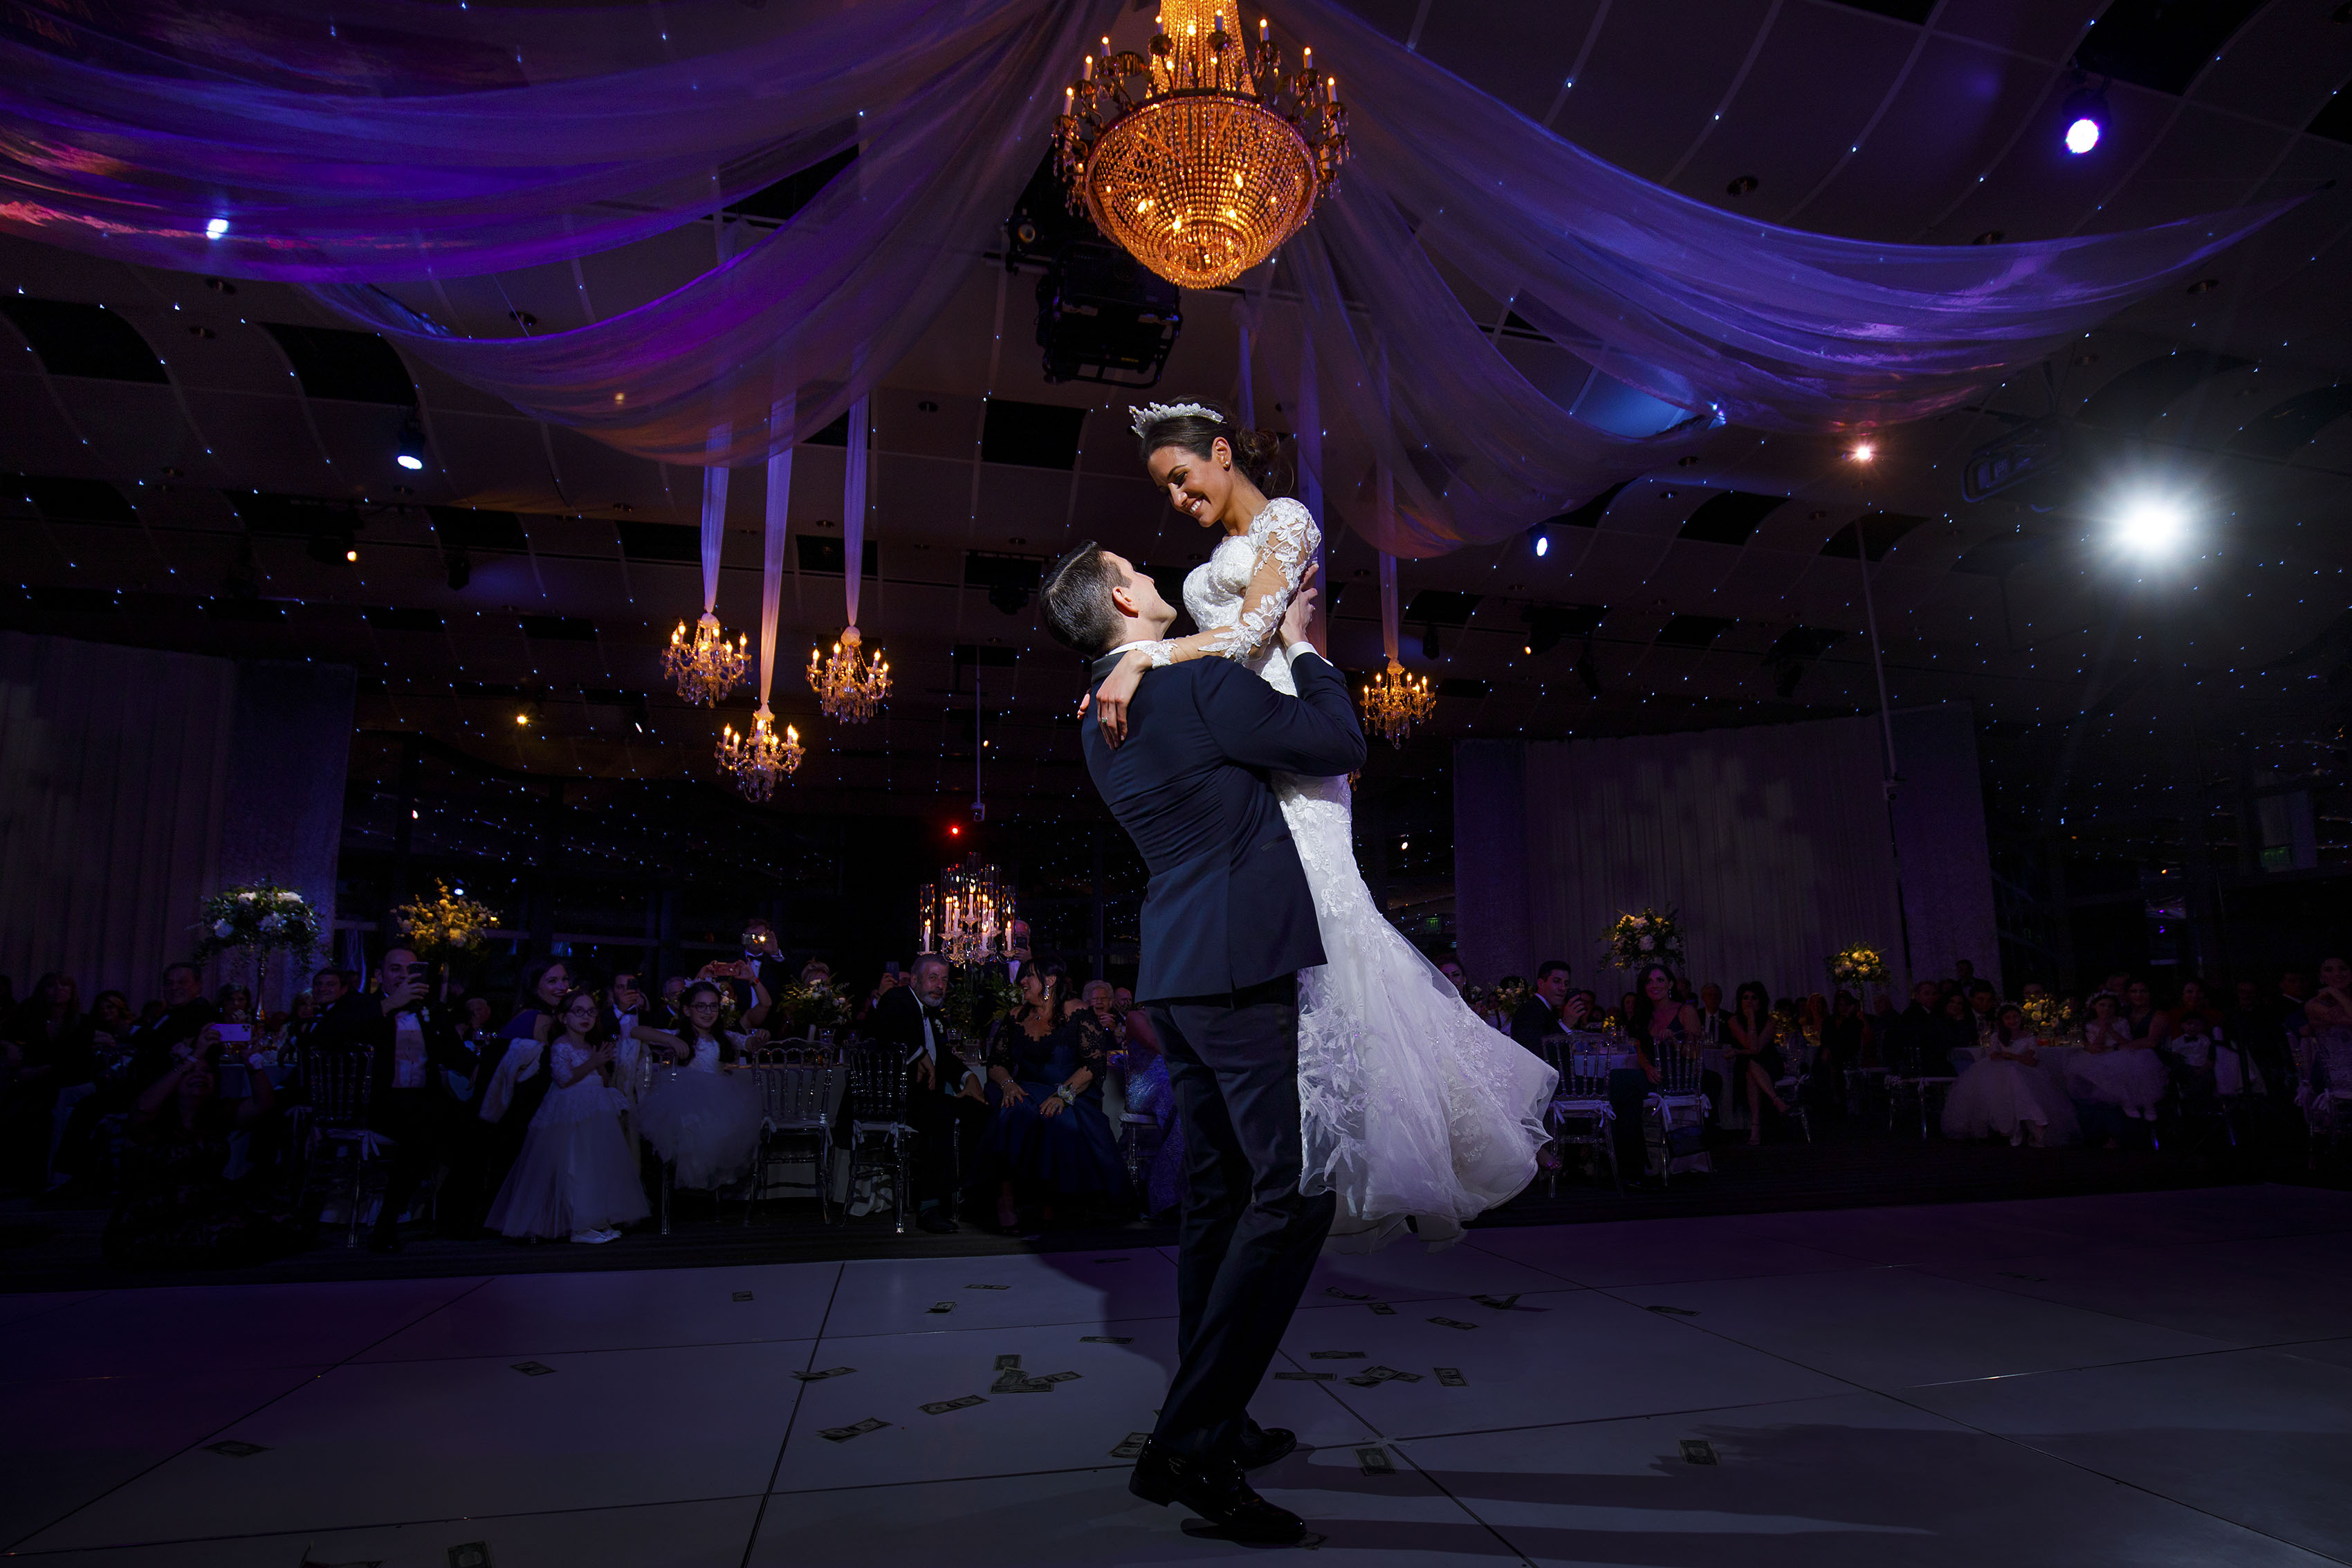 Ioanna and Alex share their first dance together during their Seawell Ballroom wedding reception at the Denver Center for The Performing Arts